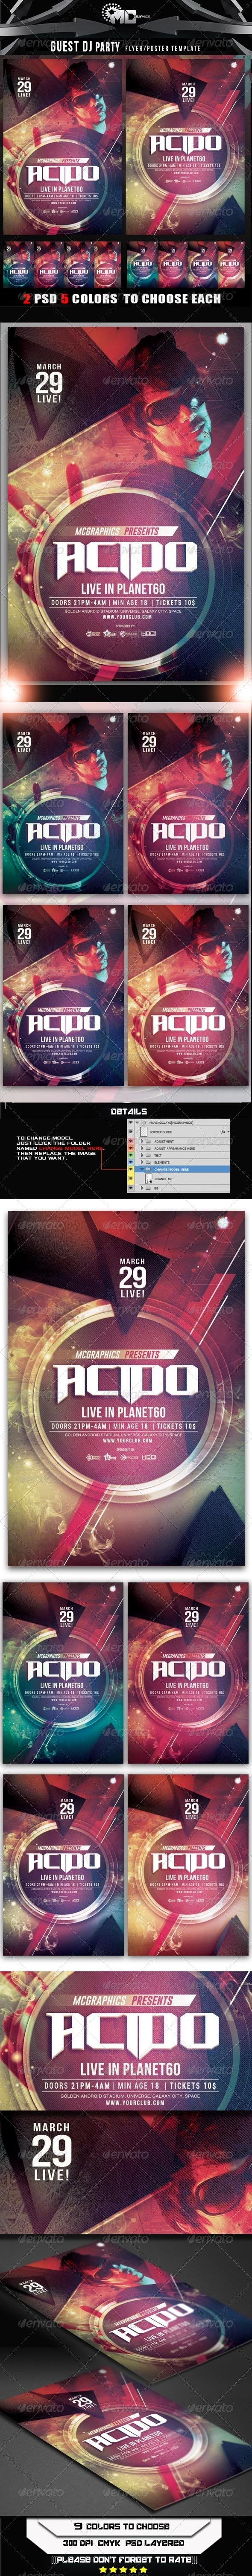 Guest DJ Party Flyer/Poster Template - Flyers Print Templates